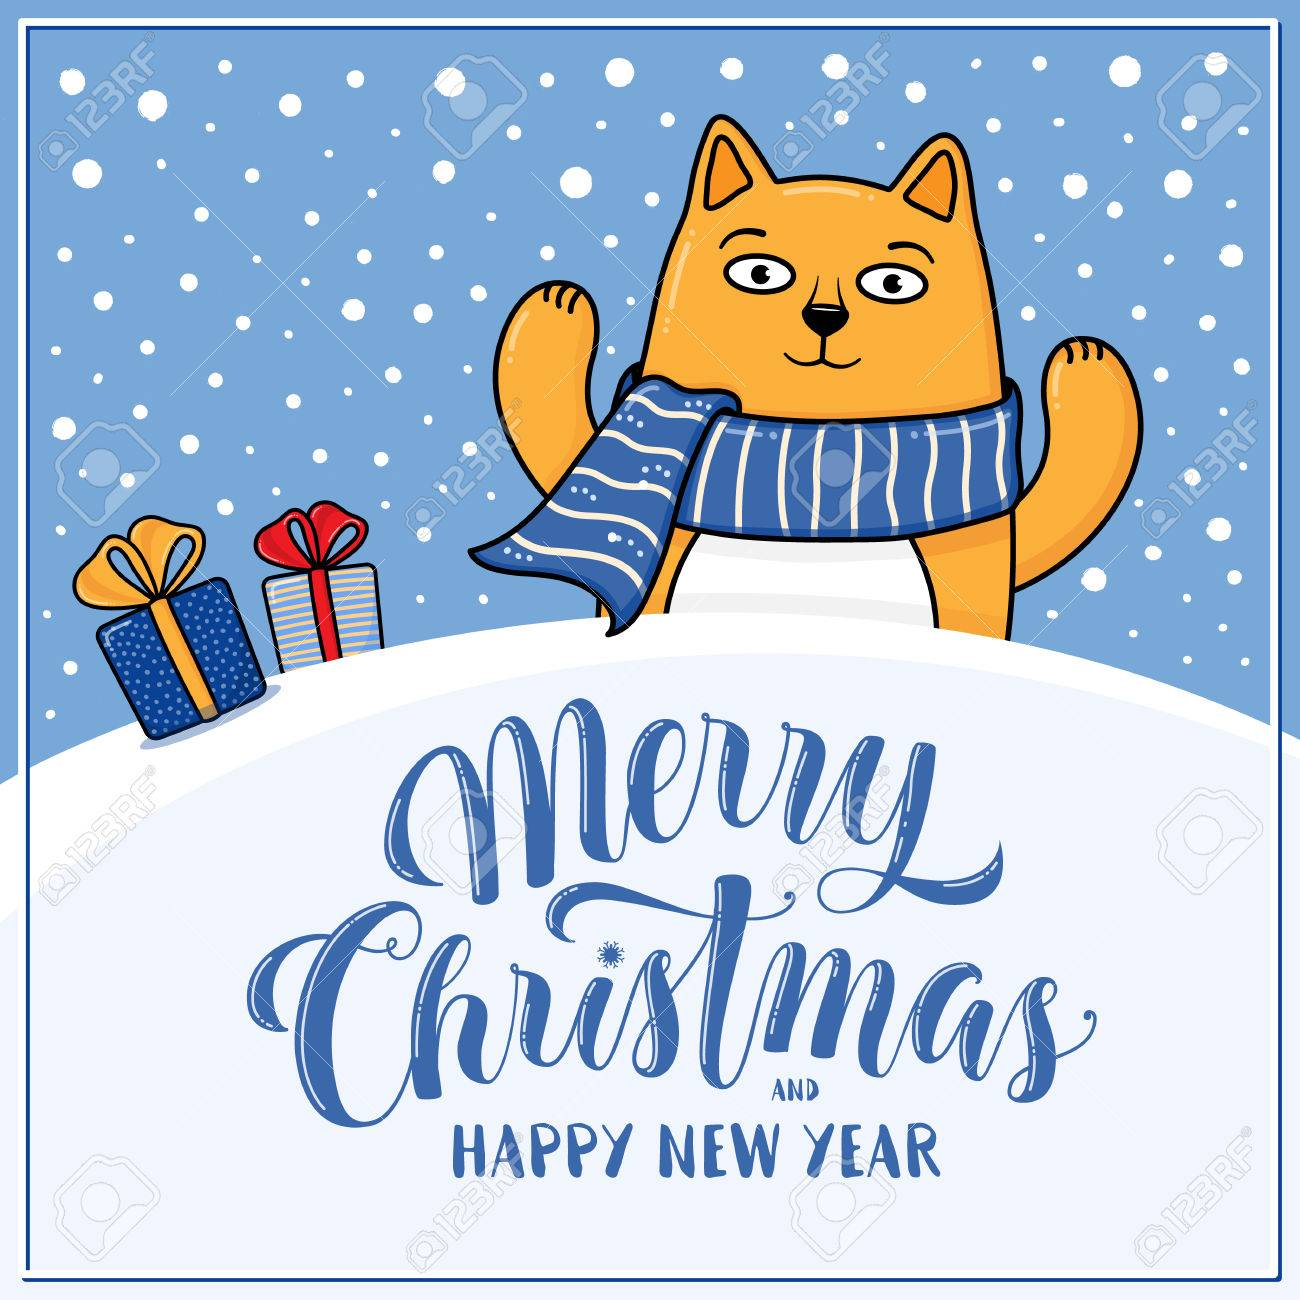 merry christmas and happy new year greeting card with happy cat gifts snow hills